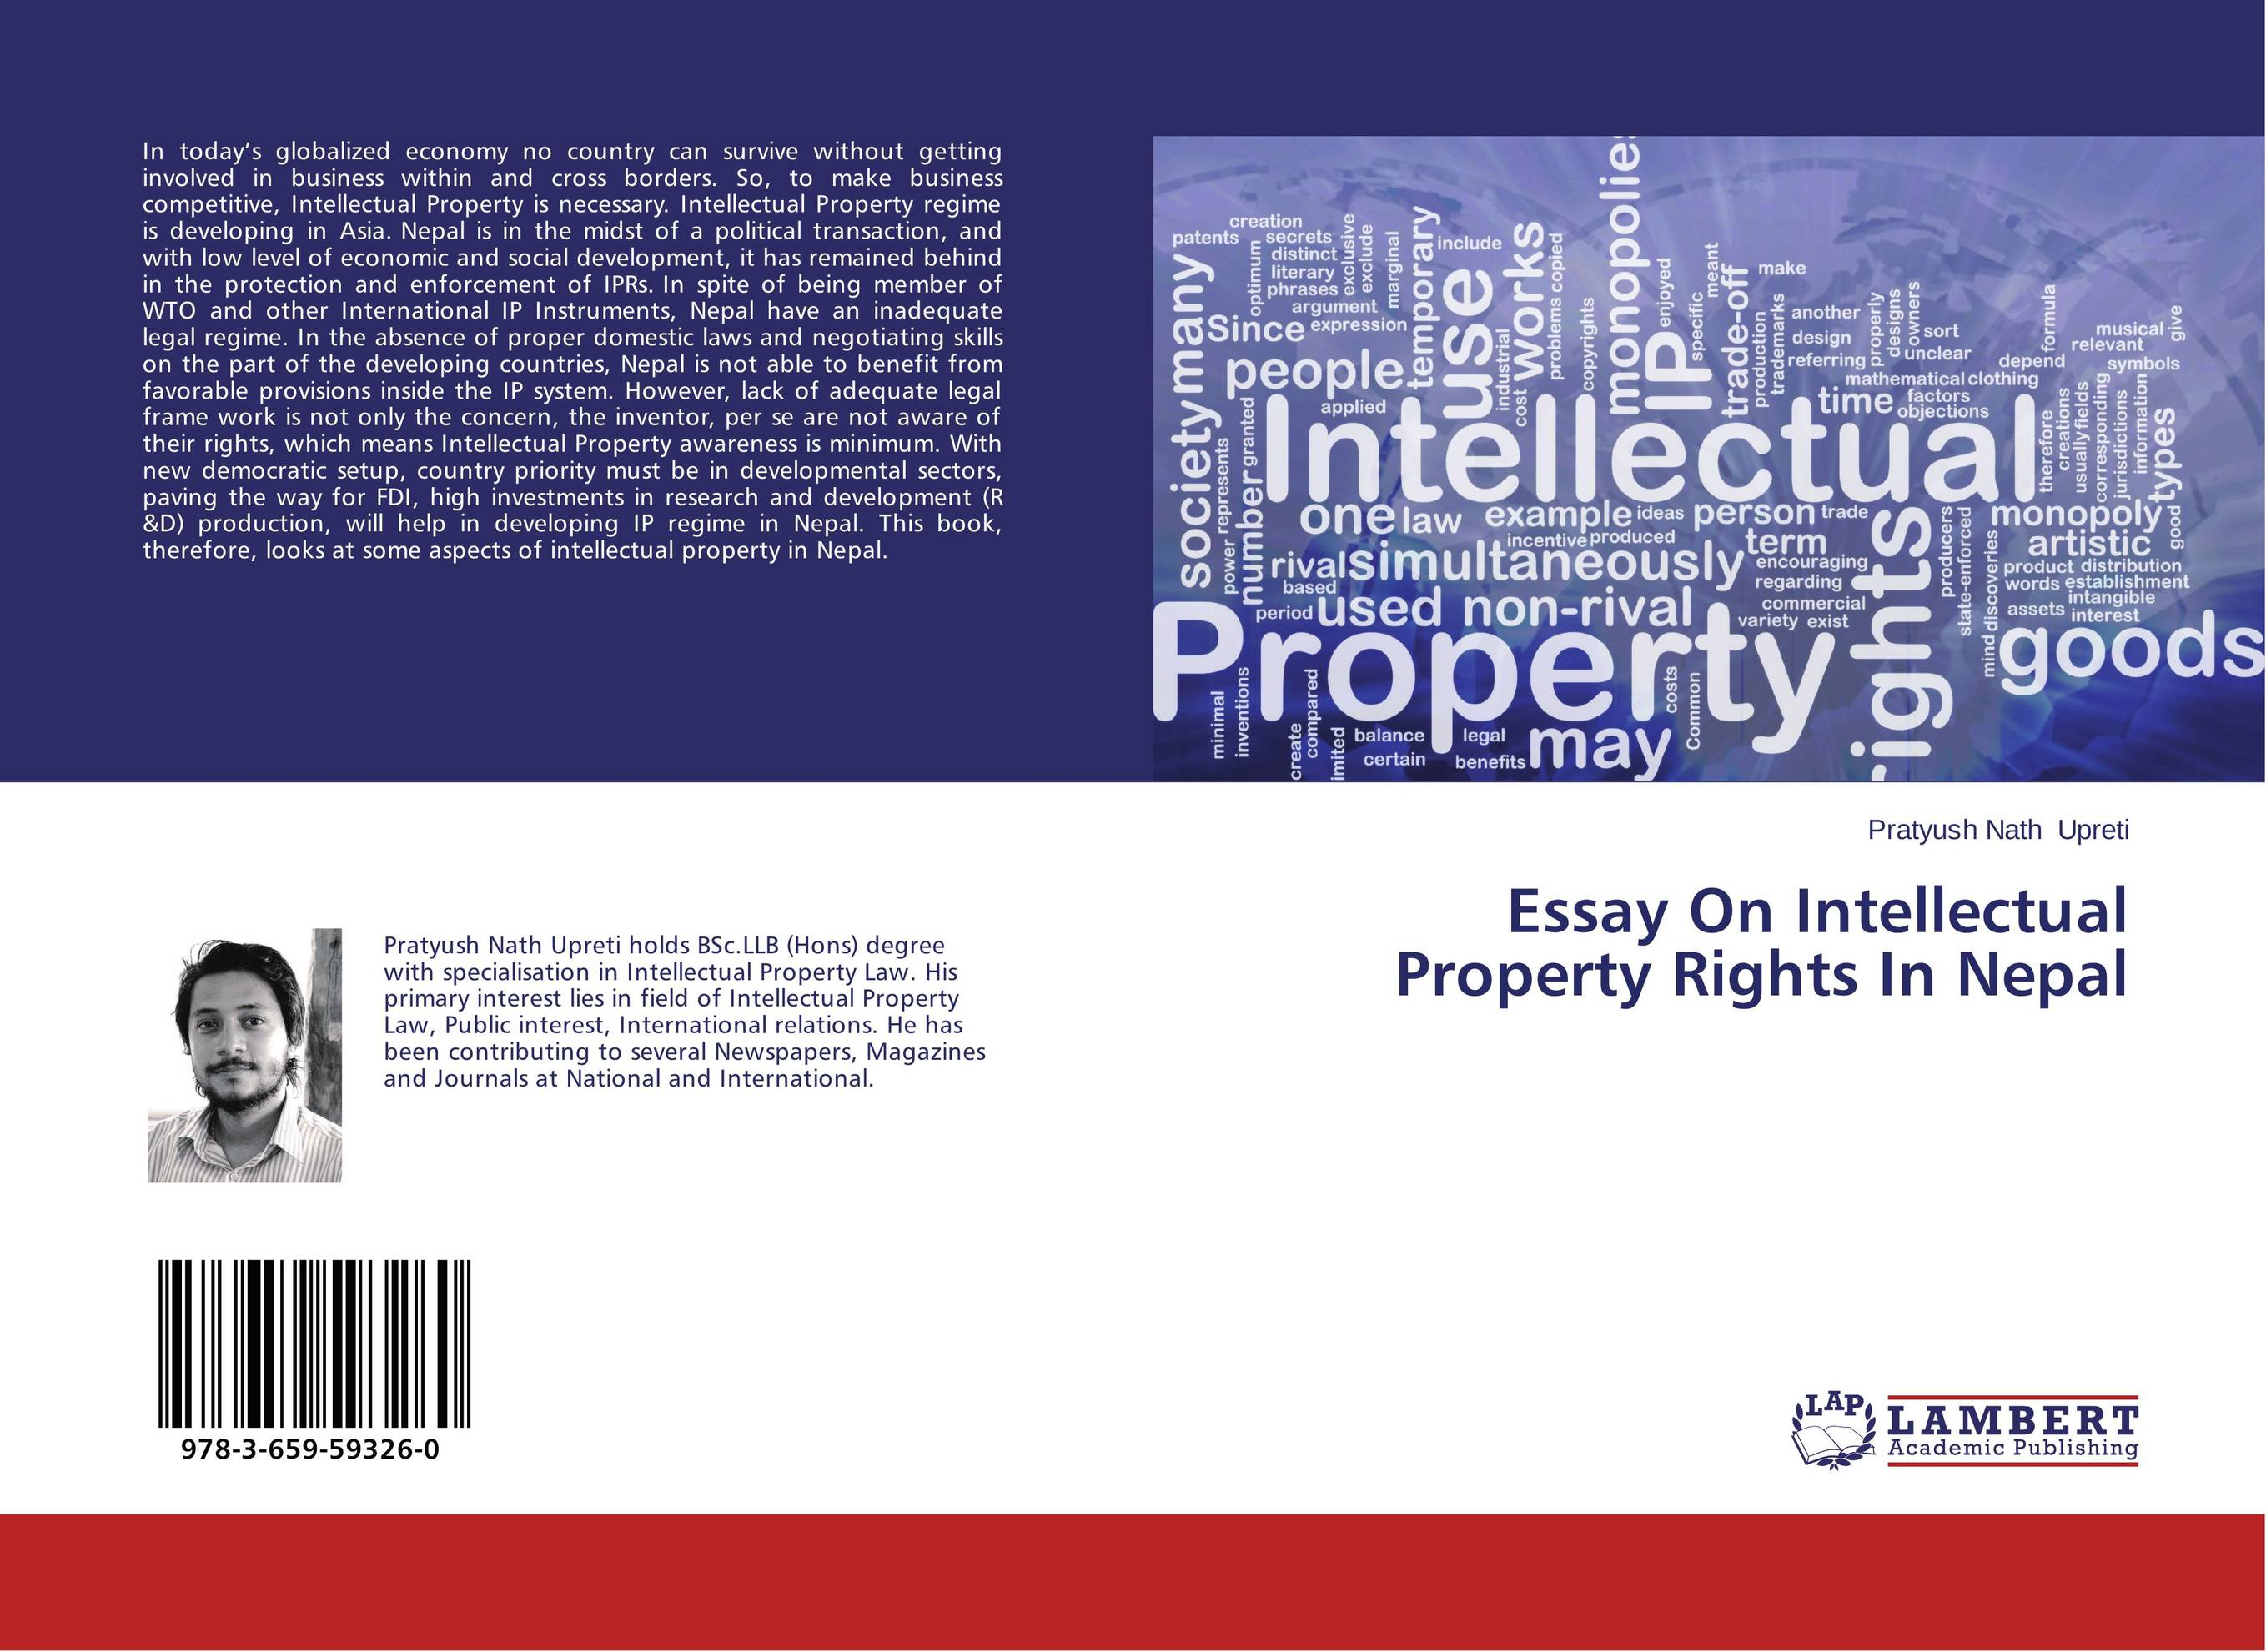 intellectual property rights and the fashion industry cultural studies essay Mexico city a key component of the industry's success intellectual property expert at creative business house (an organization specializing in fashion and trademarking) intellectual property is not enforced as it is within the film industry and music industry it is often argued that the blatant theft of new ideas.